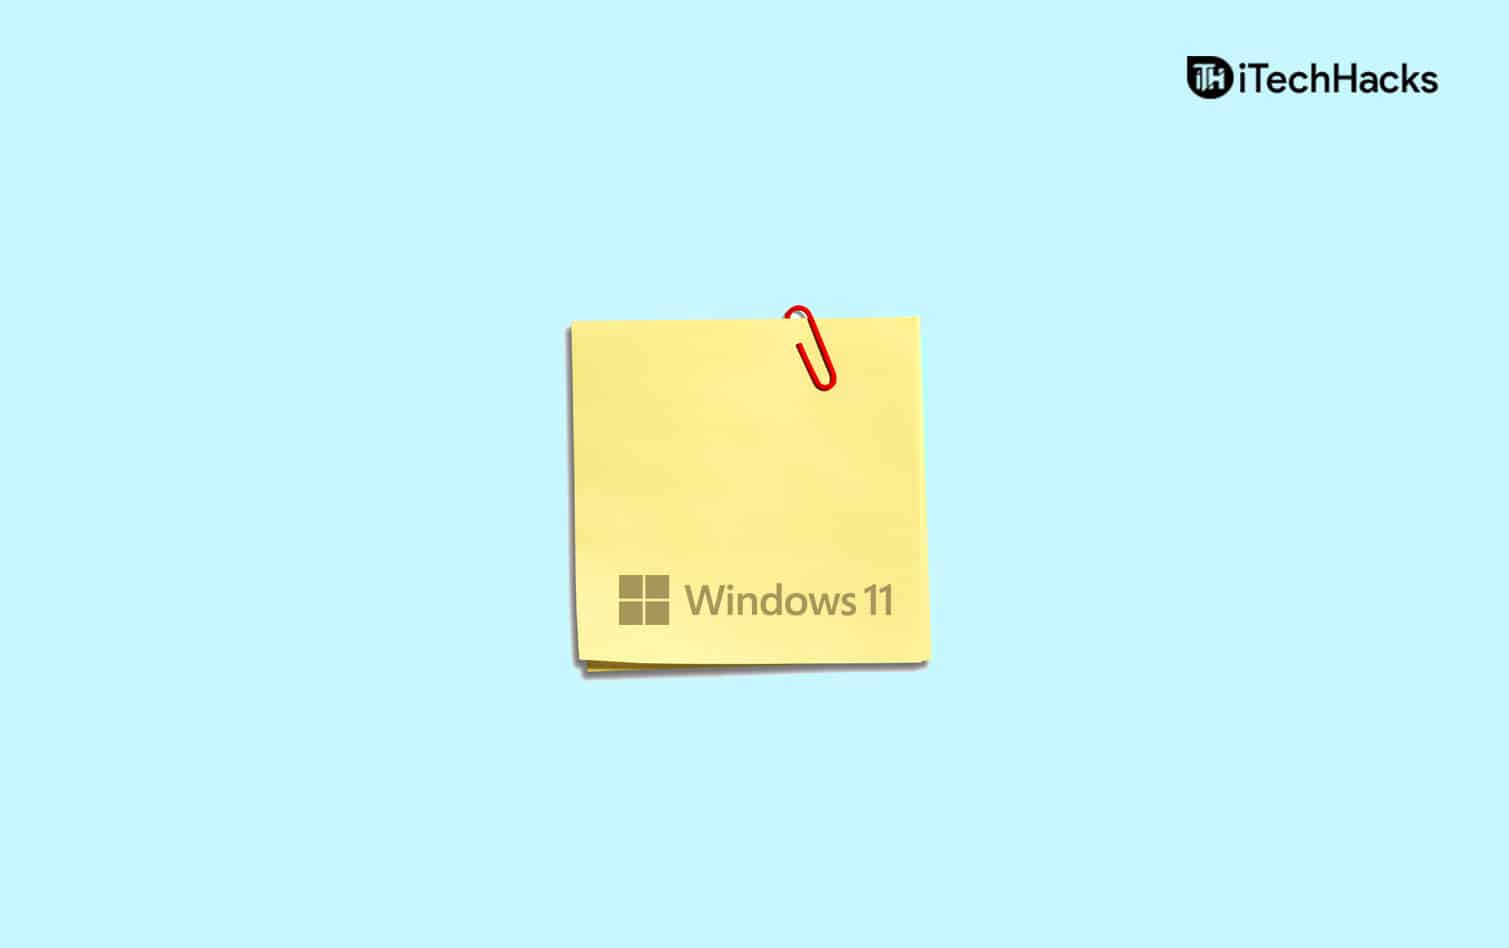 How To Put Sticky Notes On Desktop In Windows 11